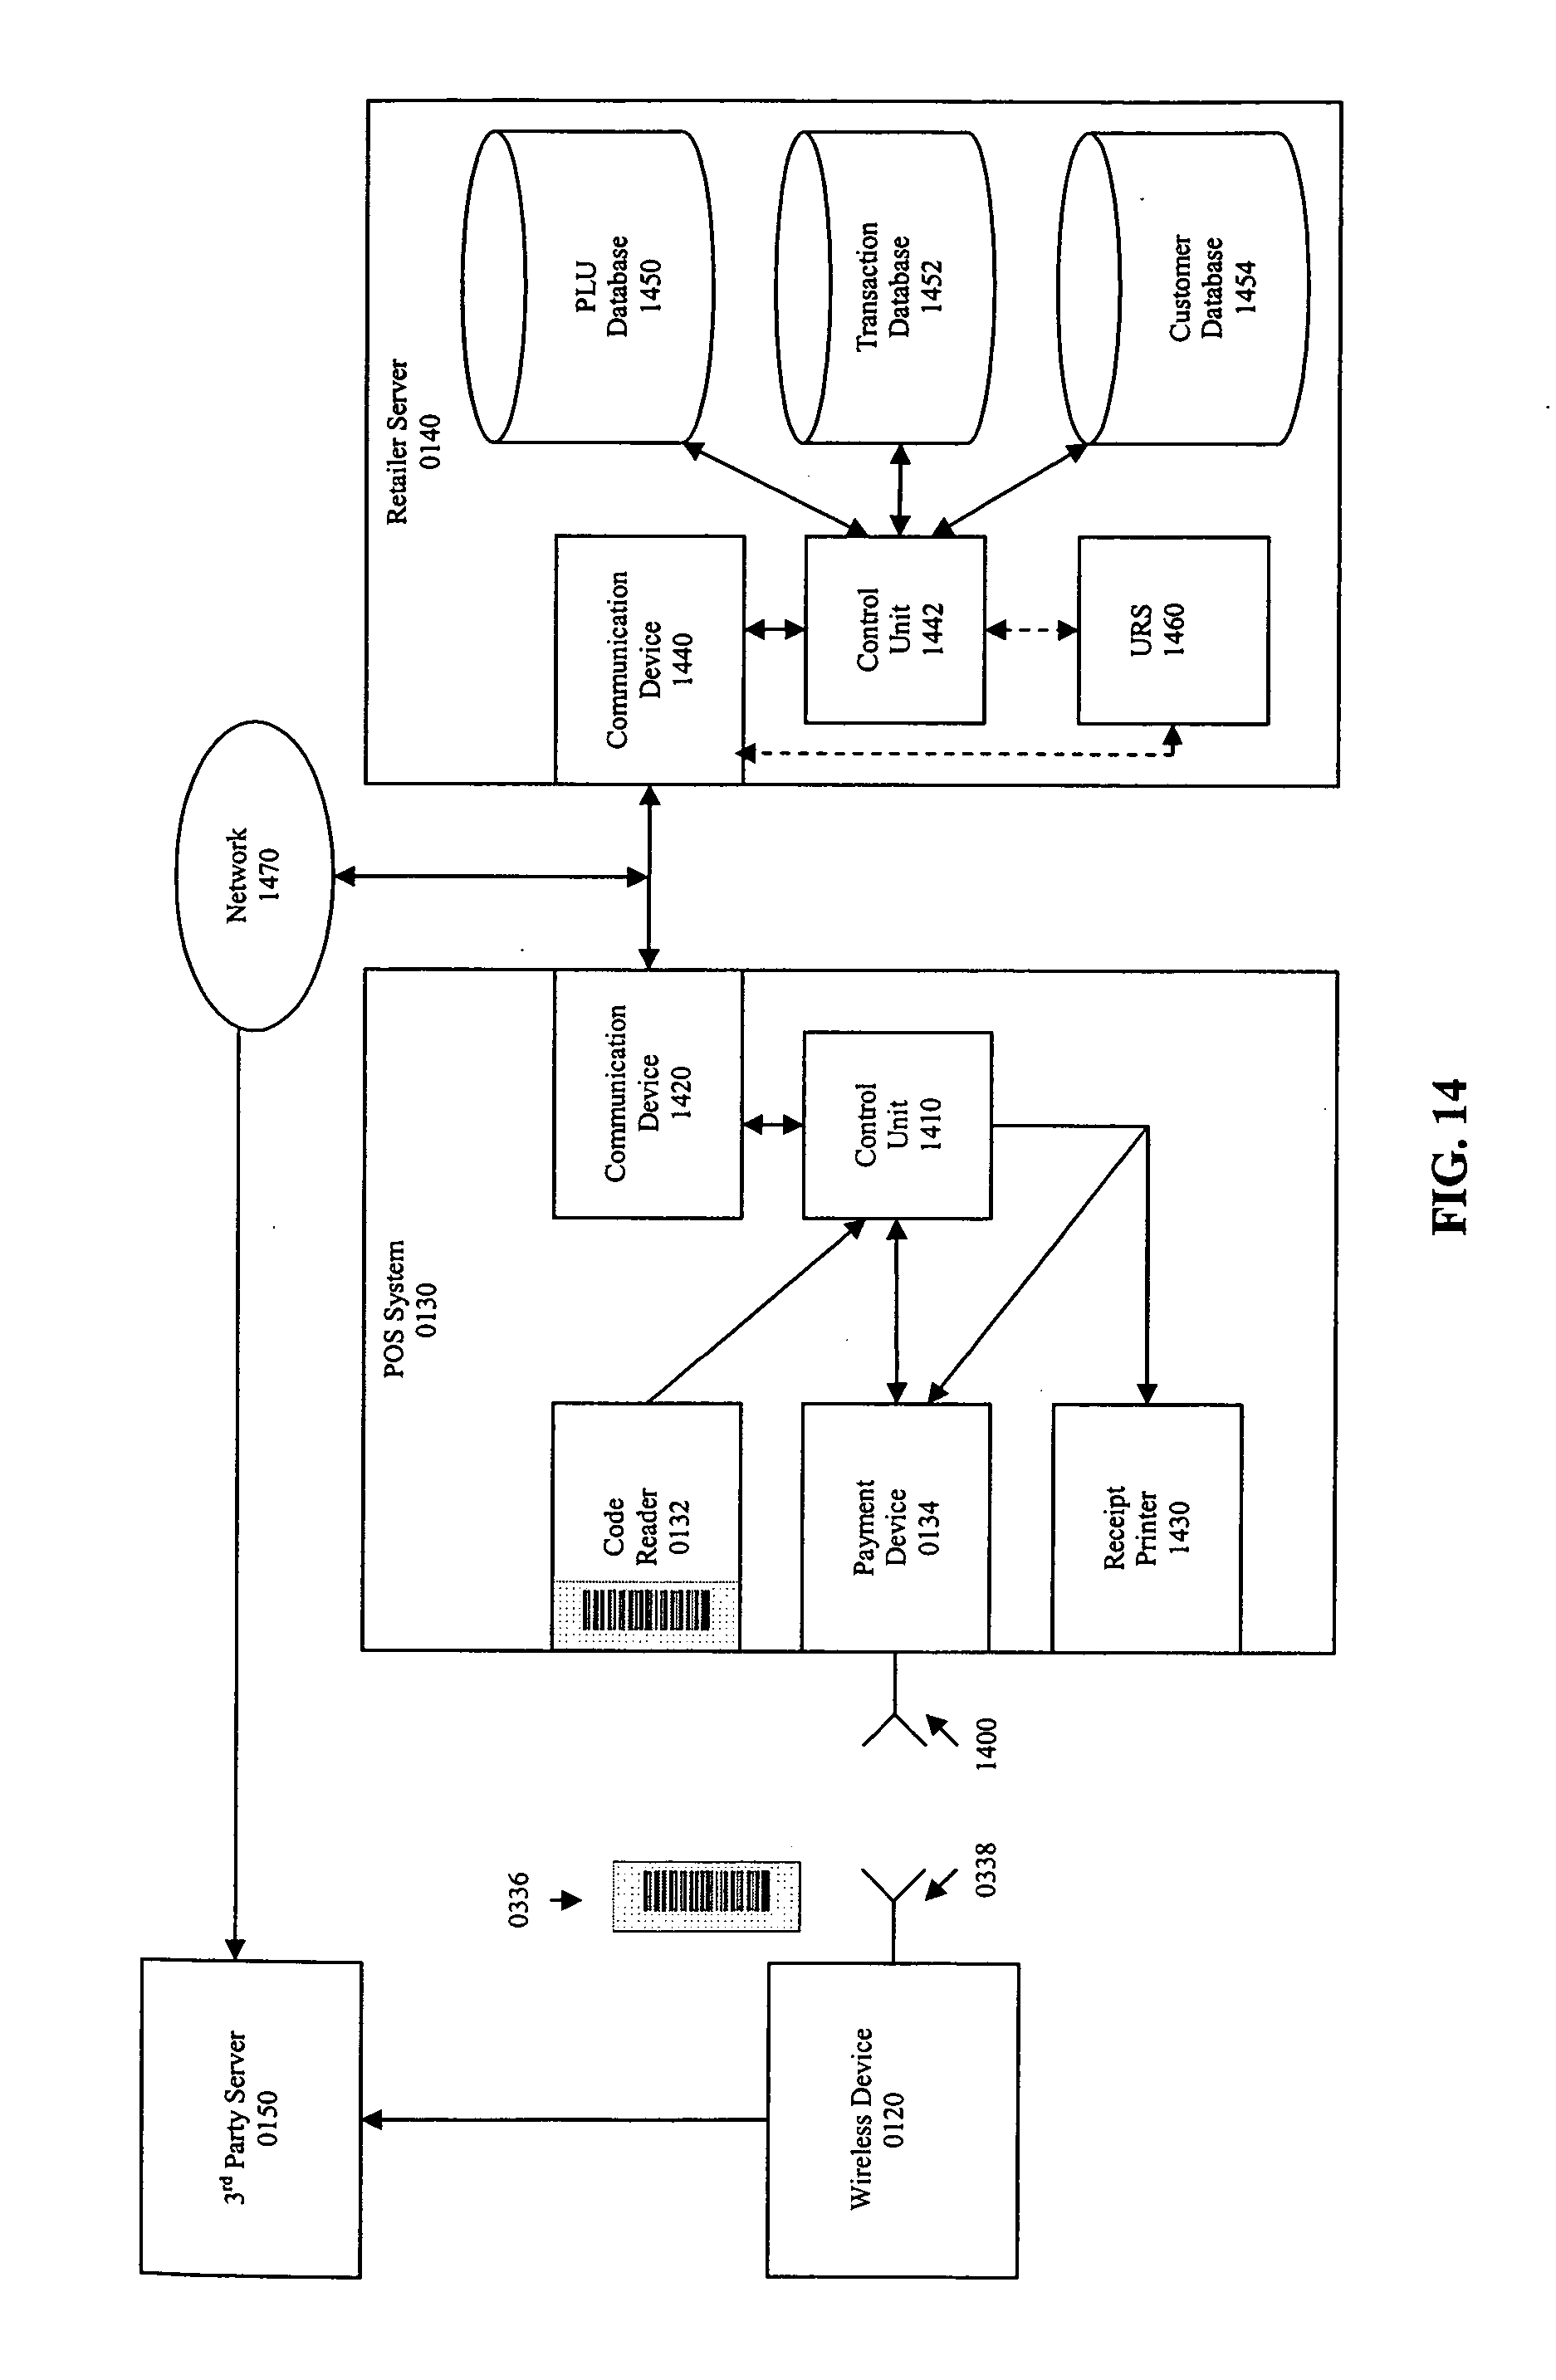 Patent Us20070073585 Systems Methods And Computer Program Block Diagram Hardwired Control Unit Drawing